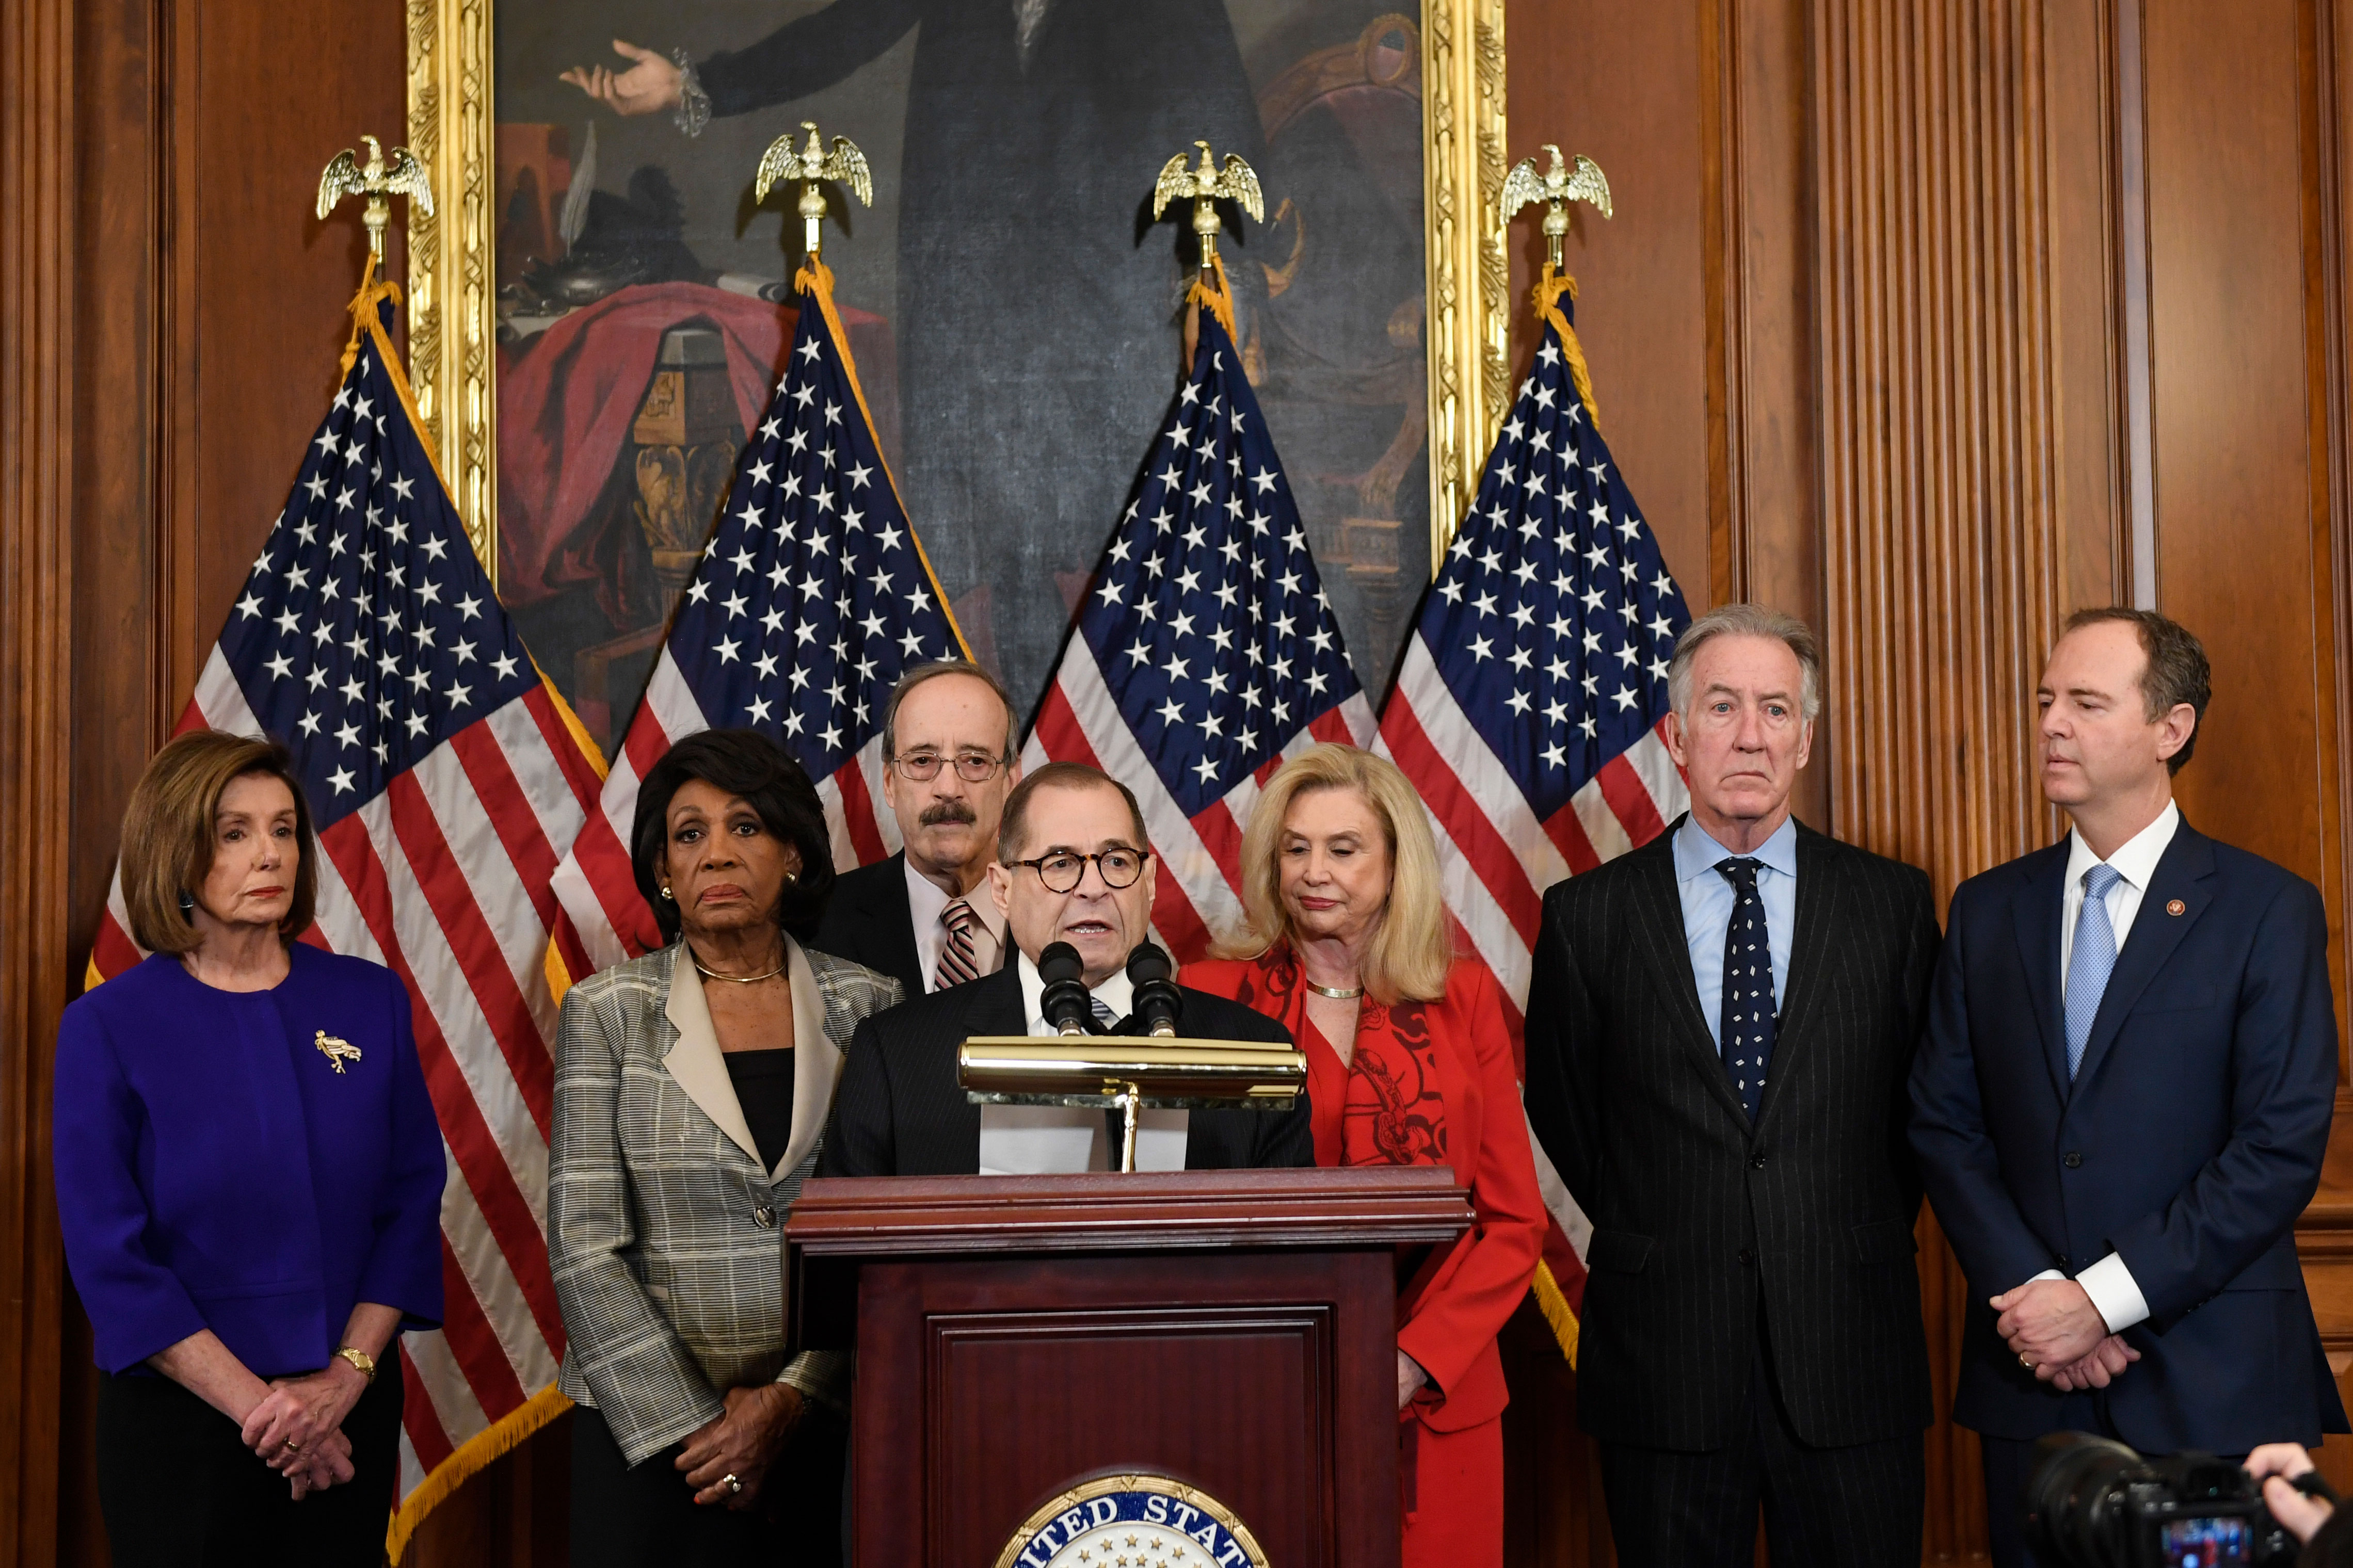 House Democrats unveil articles of impeachment Tuesday